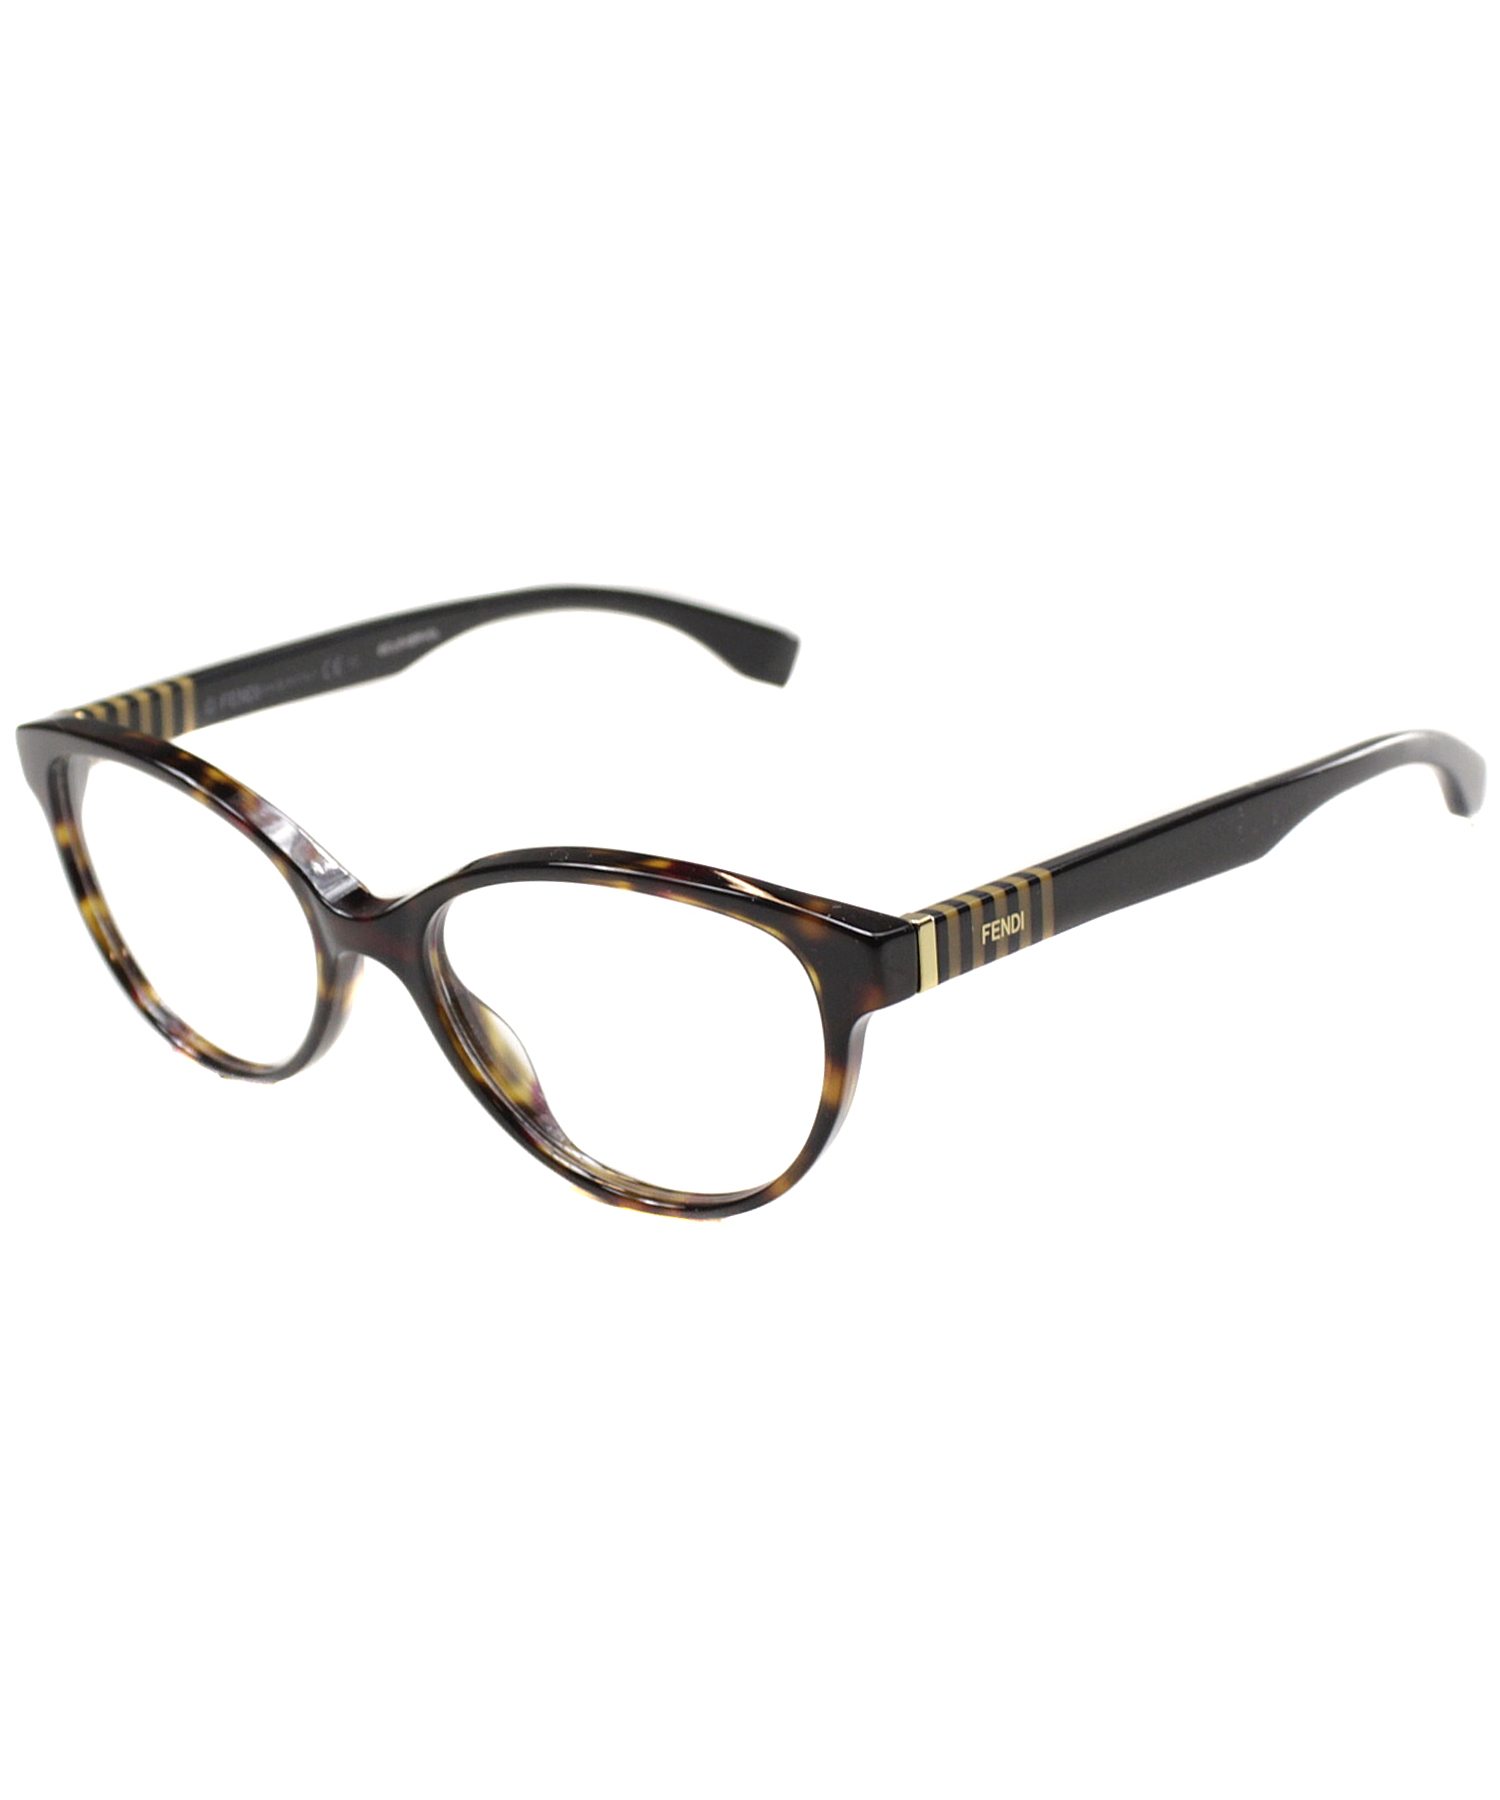 Ray Ban Clubmaster Glasses Frames